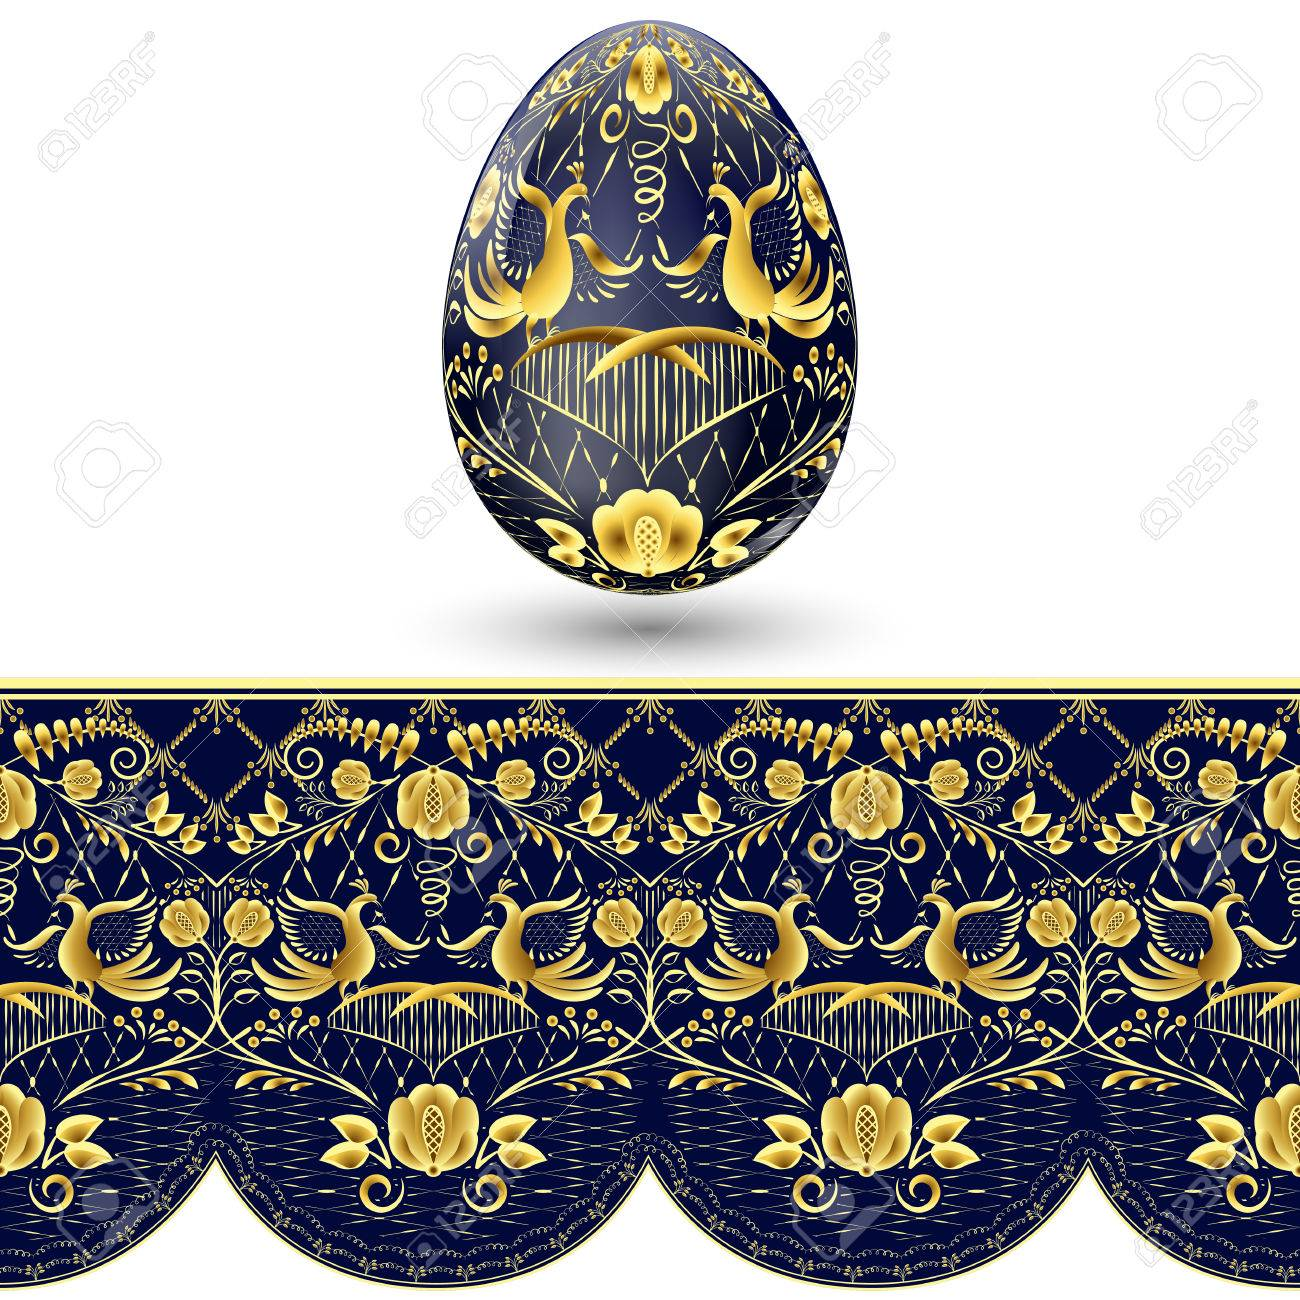 Easter egg painted. Dark blue and gold seamless pattern in national style of painting on porcelain. Vector illustration - 52180482